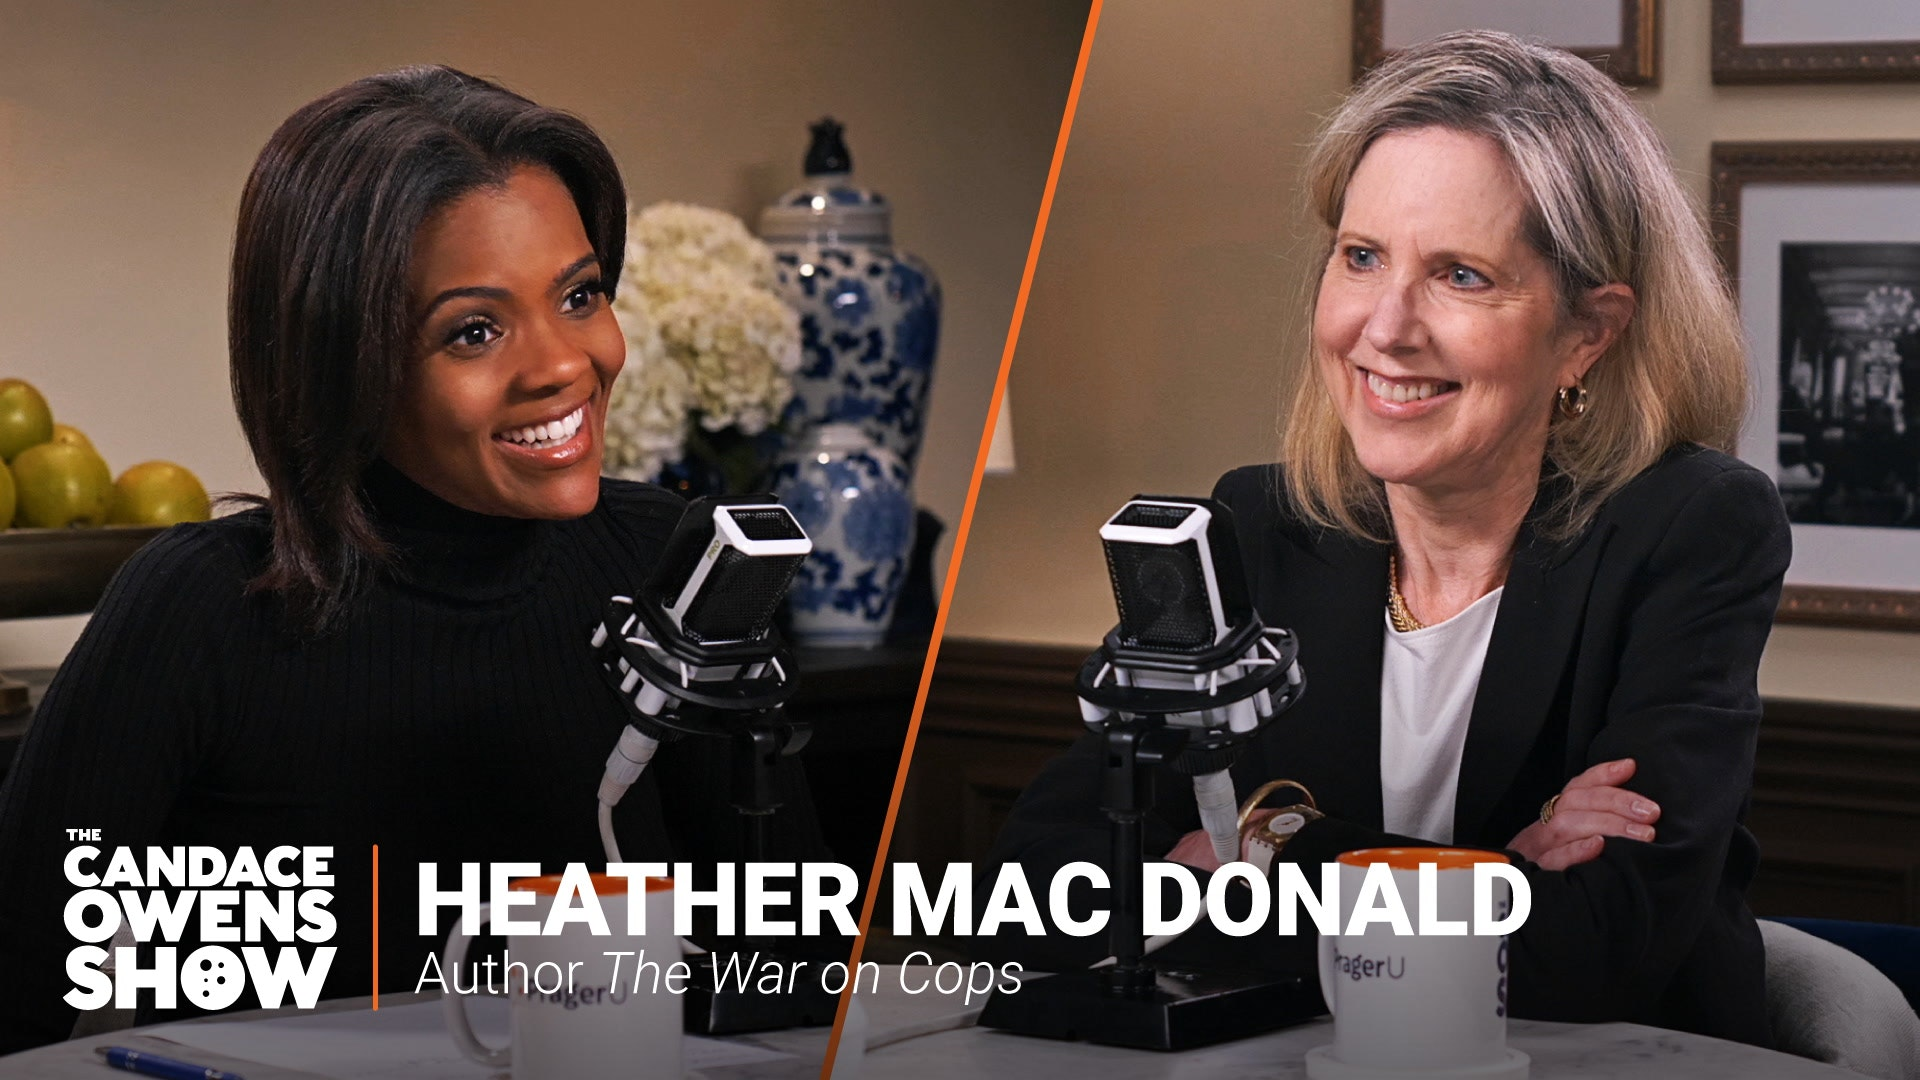 The Candace Owens Show: Heather Mac Donald